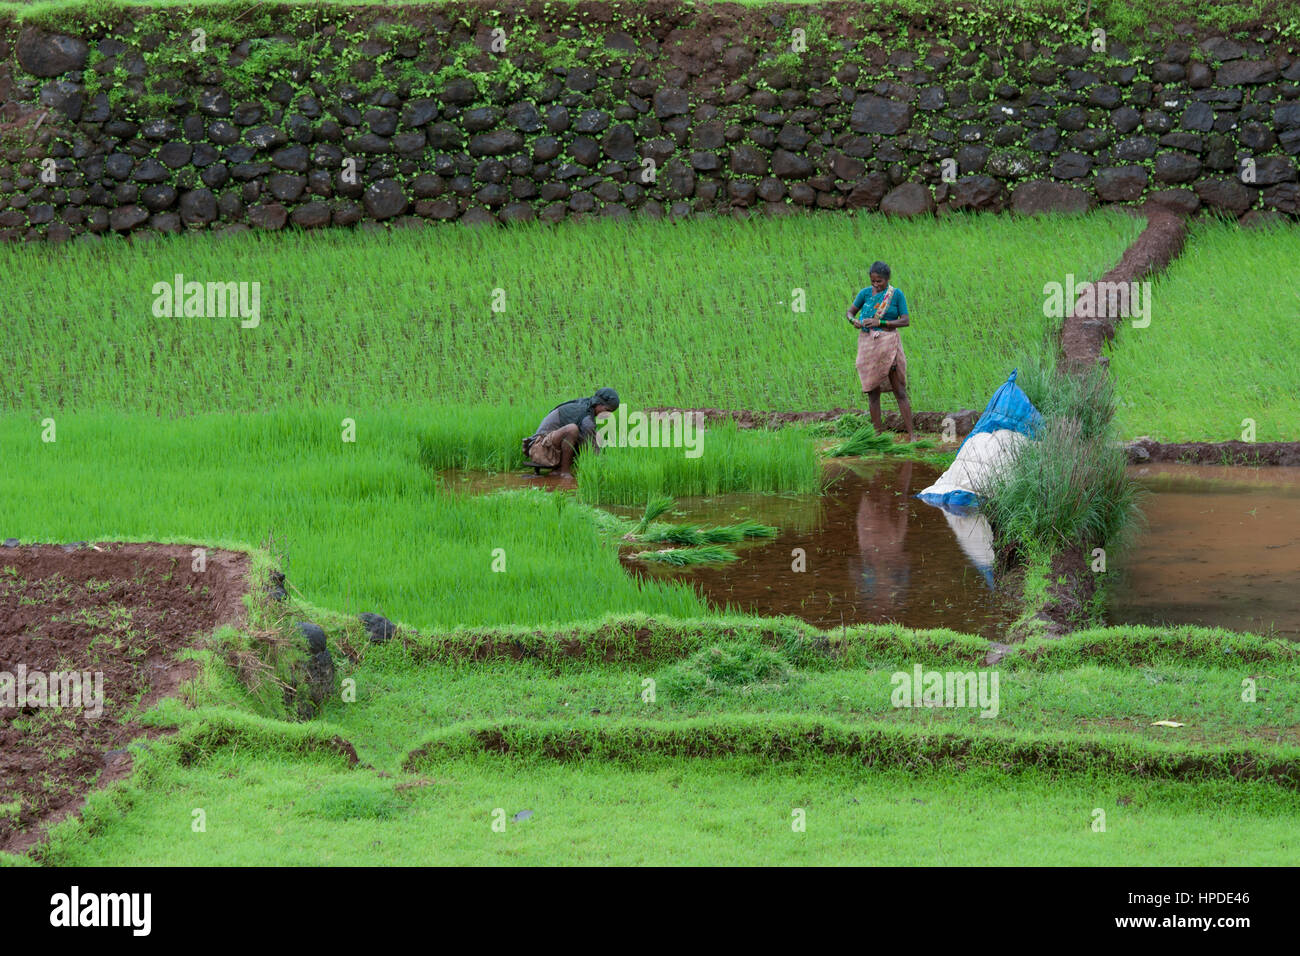 A man and a woman working on transplanting of rice seedlings in paddy field - Stock Image